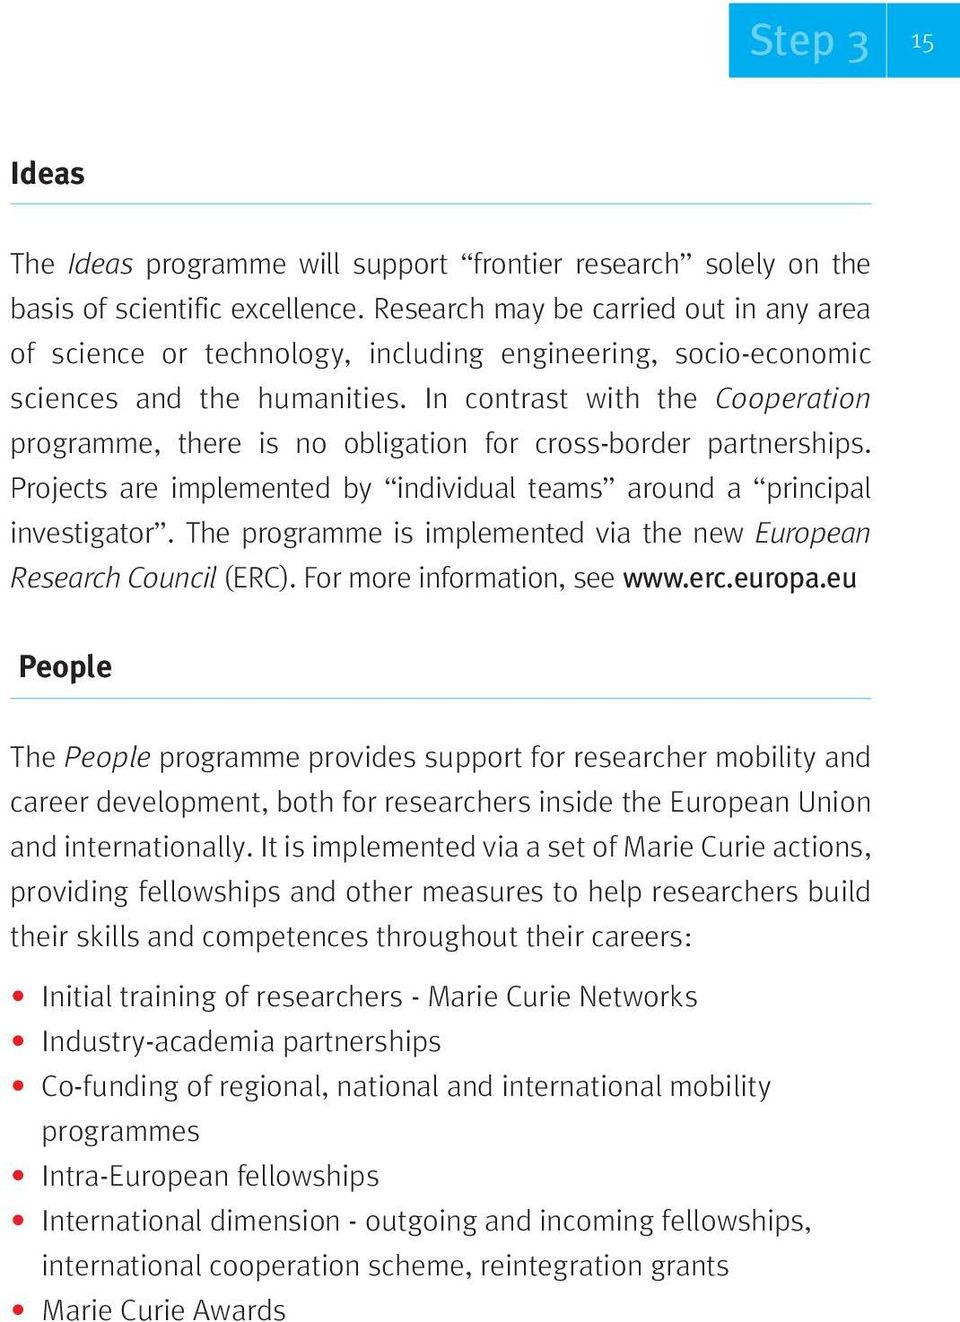 In contrast with the Cooperation programme, there is no obligation for cross-border partnerships. Projects are implemented by individual teams around a principal investigator.